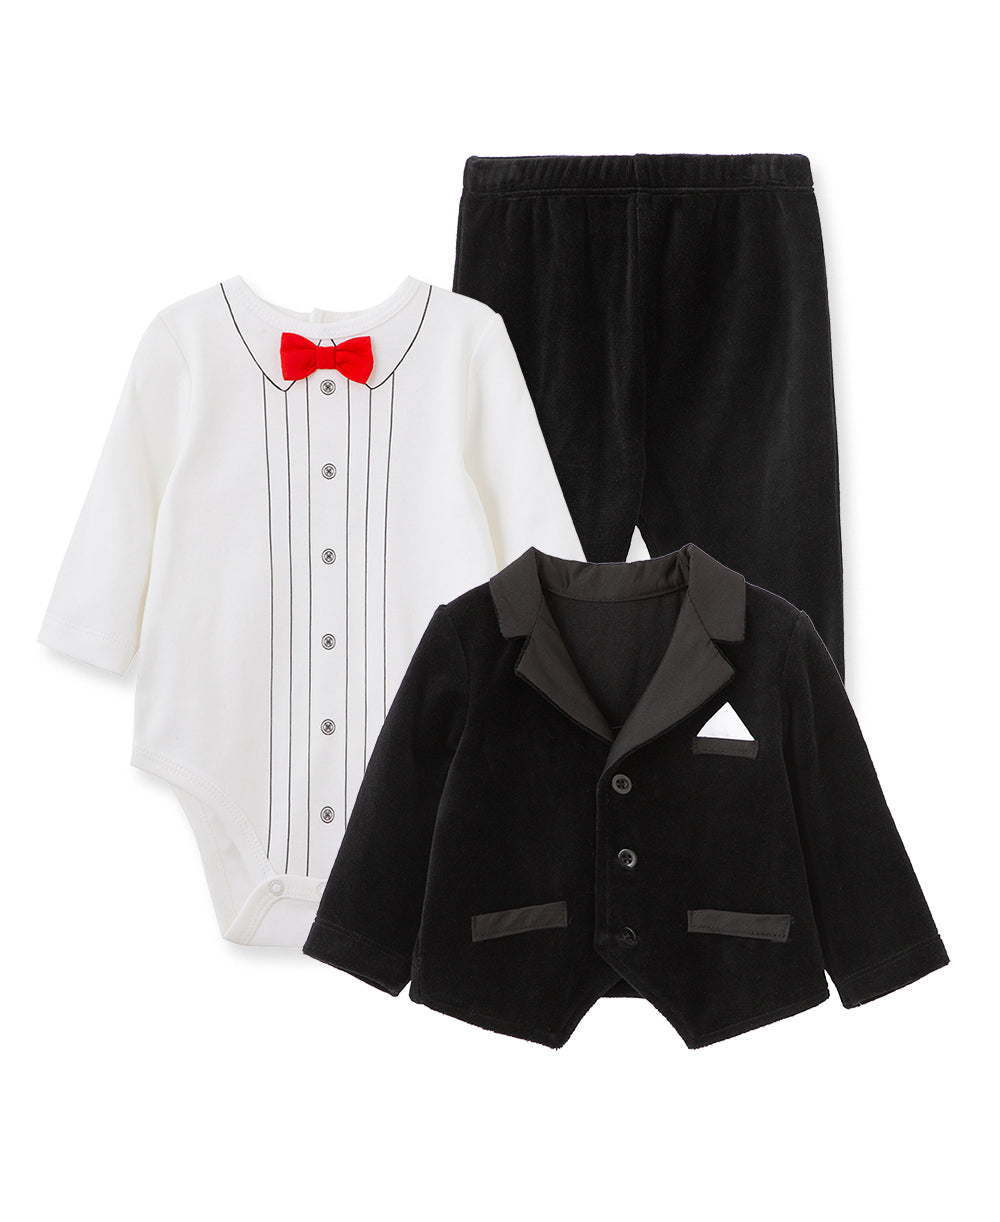 Festive Party Tuxedo Jacket Set